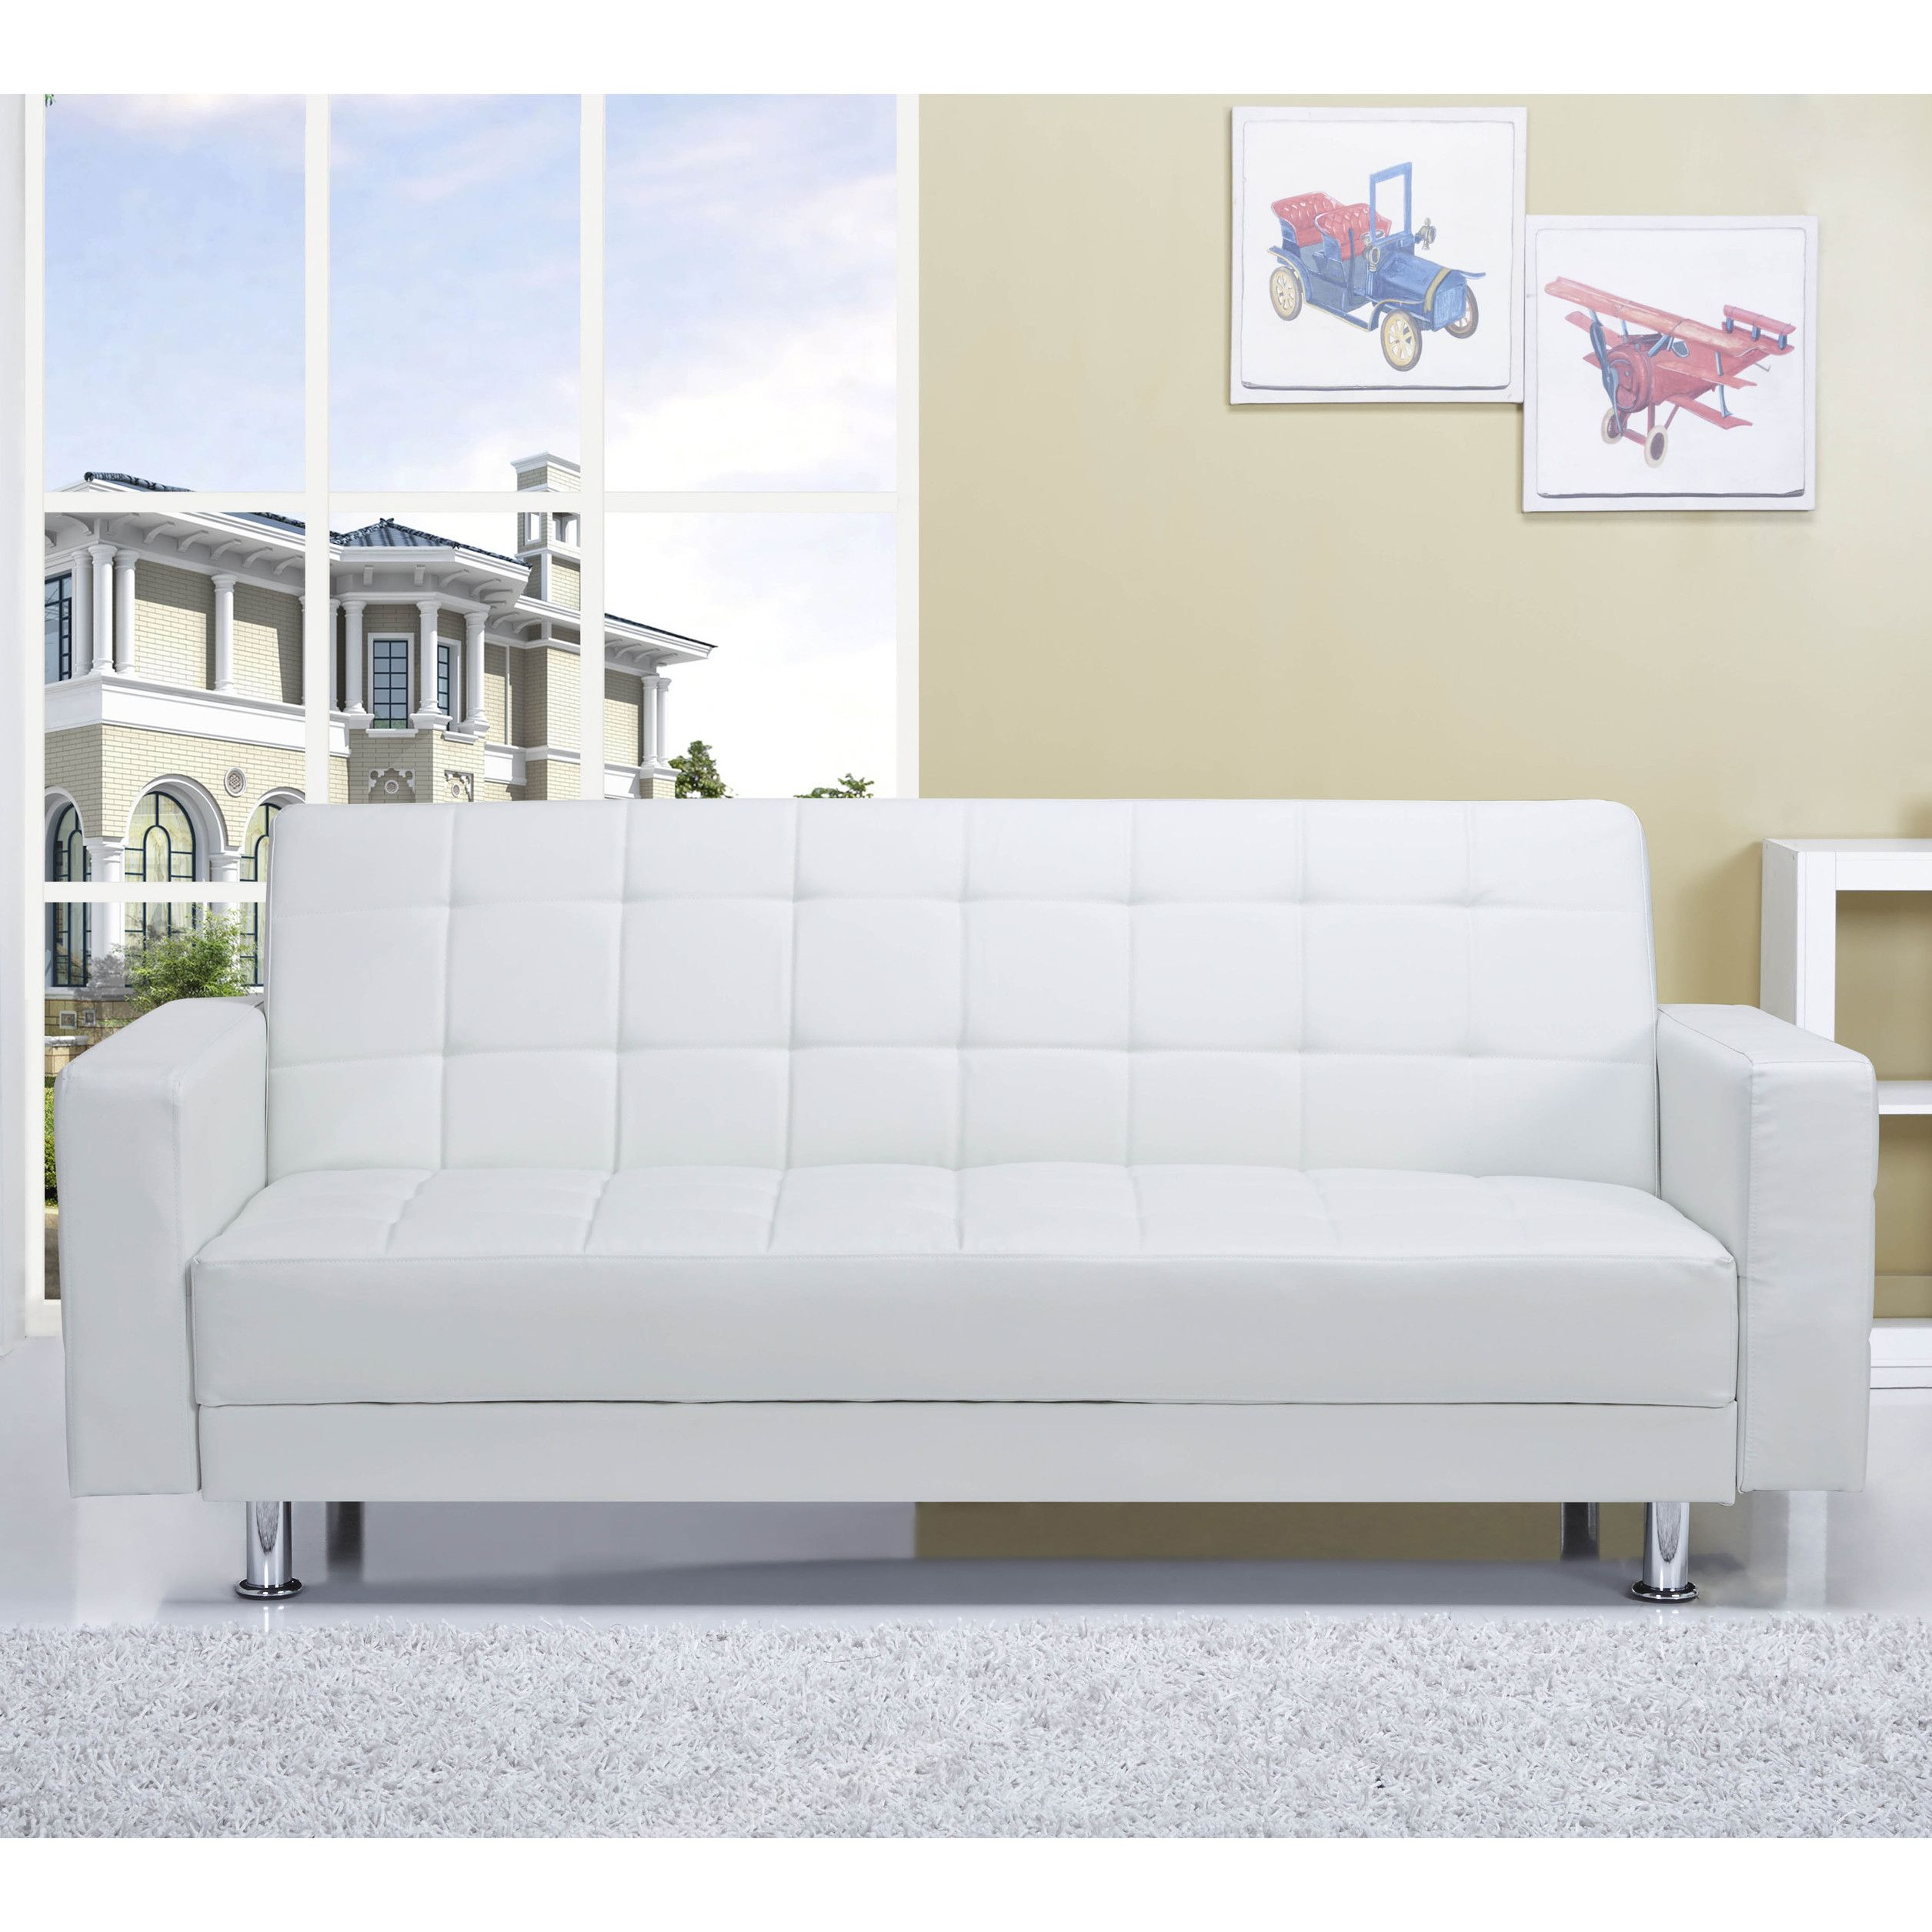 extraordinary sleeper furniture for harmaco space loveseats loveseat small